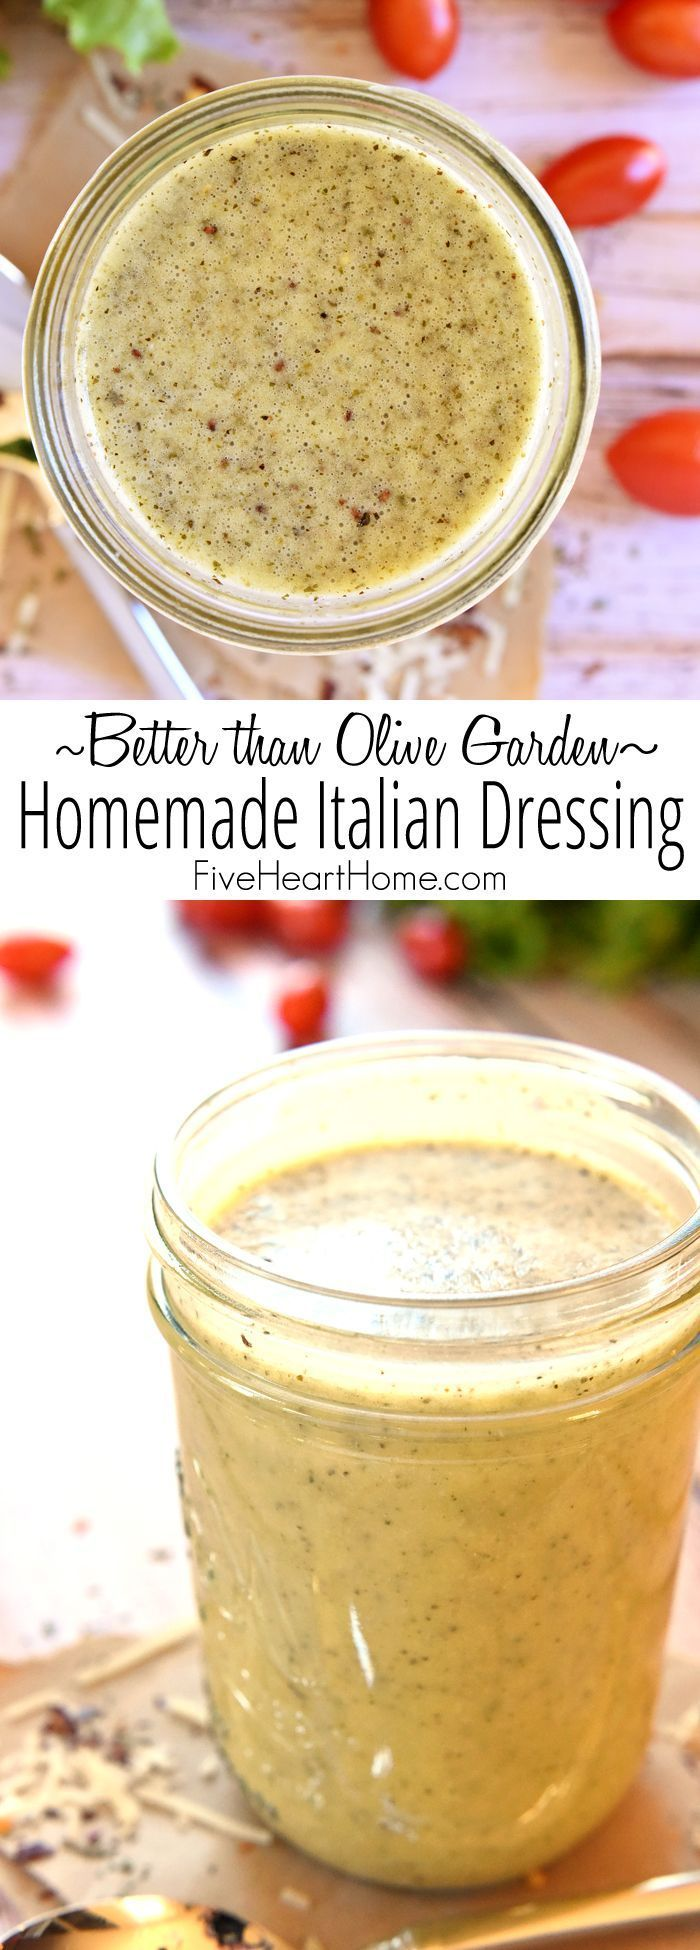 Best 25 Olive Garden Salad Ideas On Pinterest Olive Garden Italian Dressing Italian Dressing